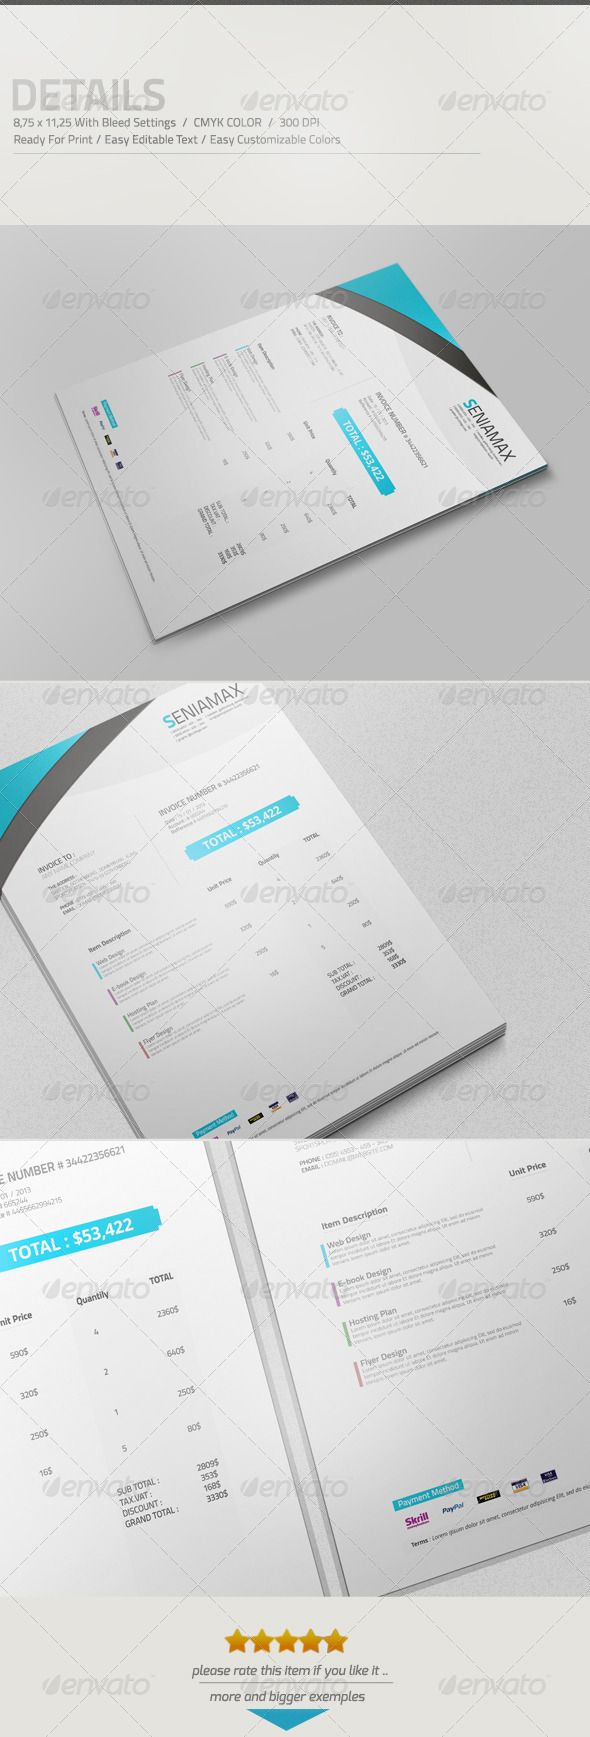 professional invoice template vol 3  graphicriver details